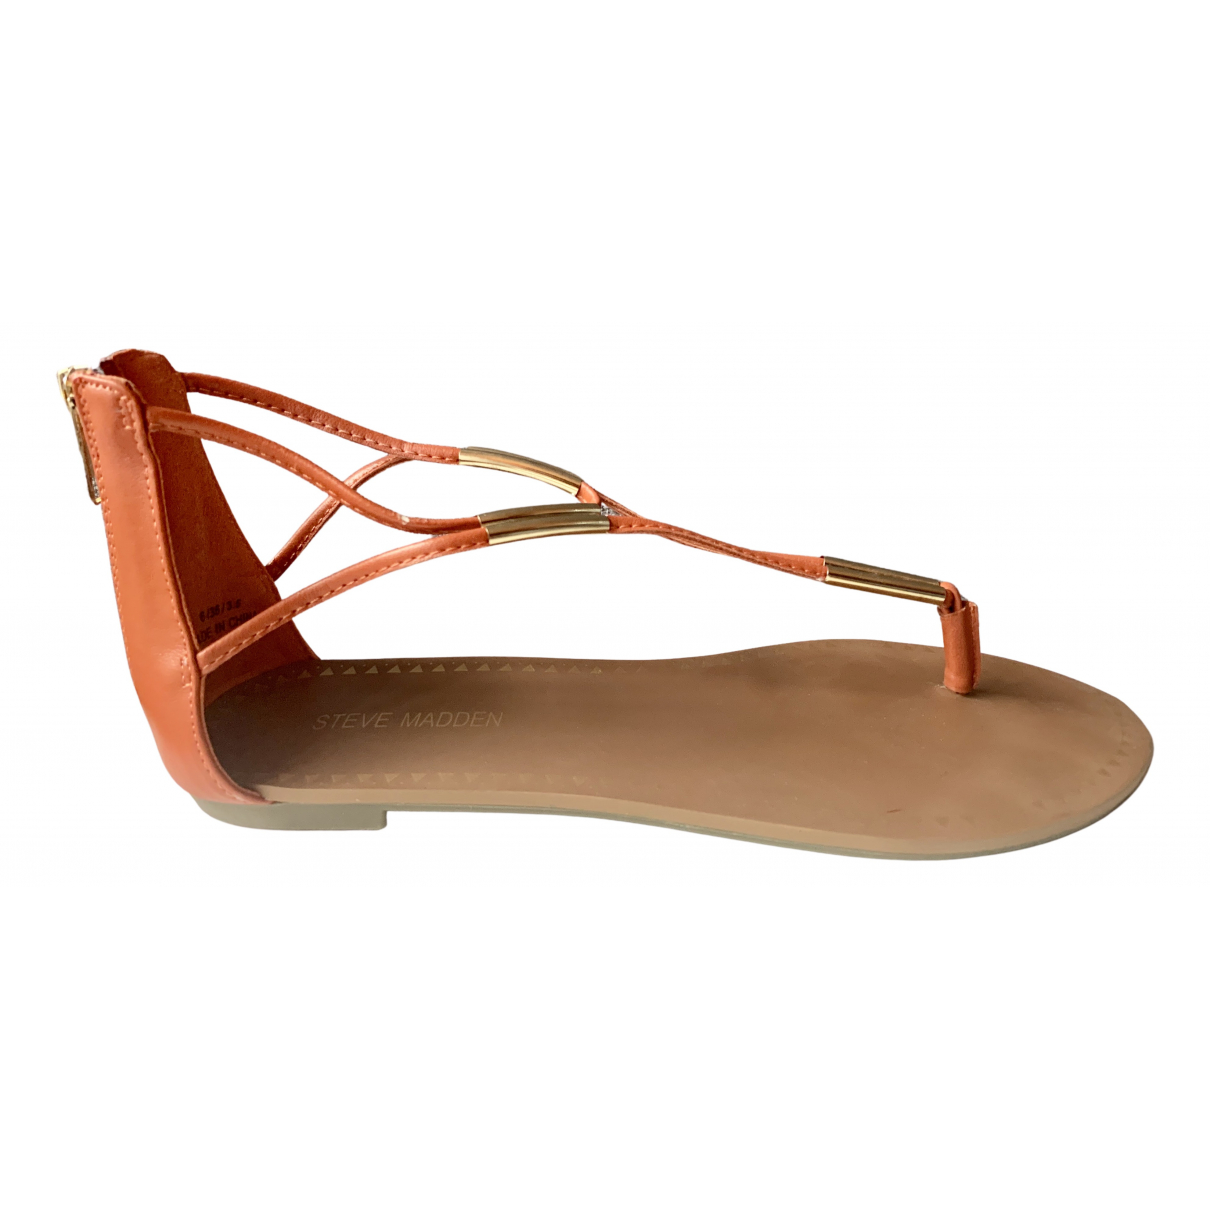 Steve Madden \N Sandalen in  Orange Leder